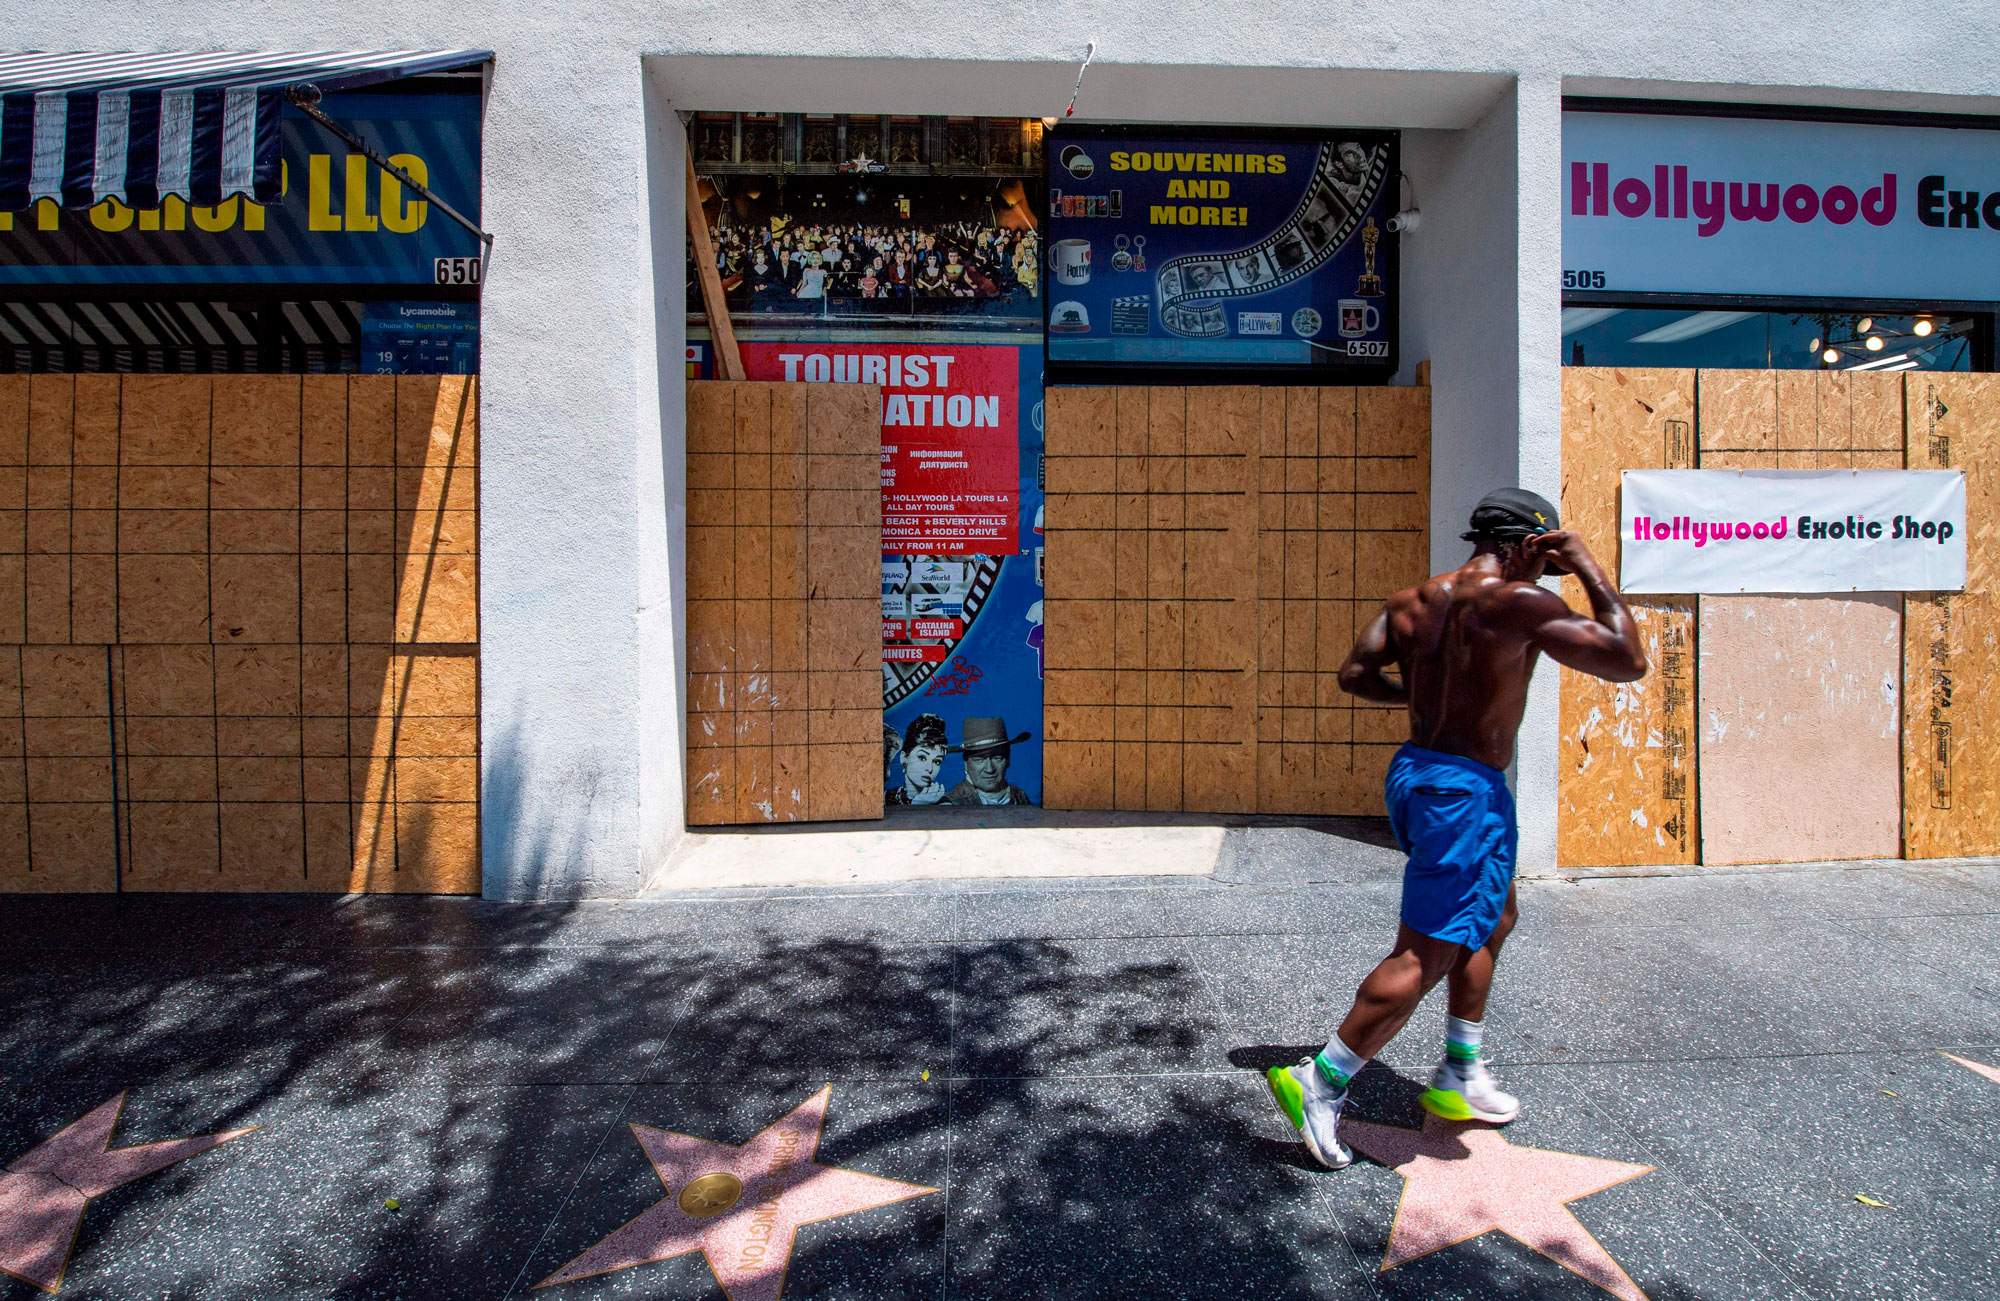 A man jogs past tourist shops on June 30 in Hollywood, California.